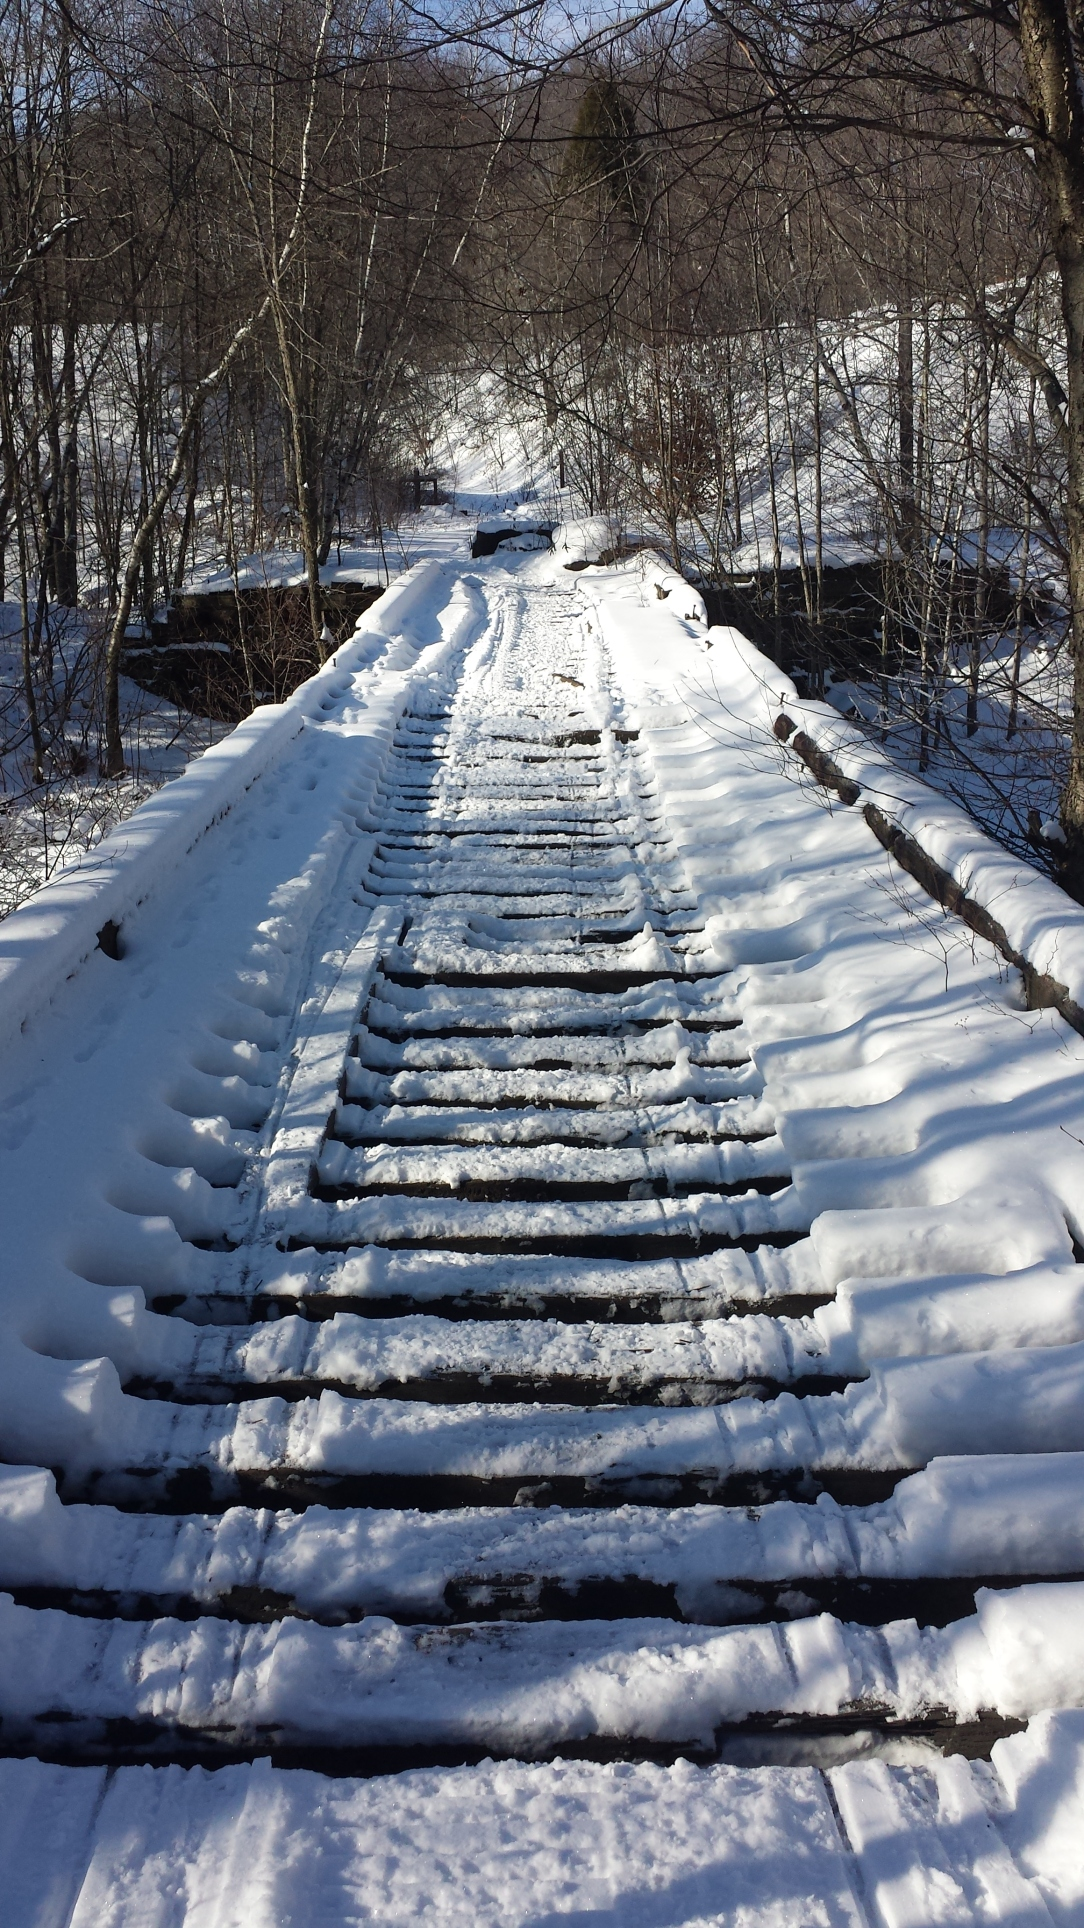 Courtesy of NEPA Rail-Trails.